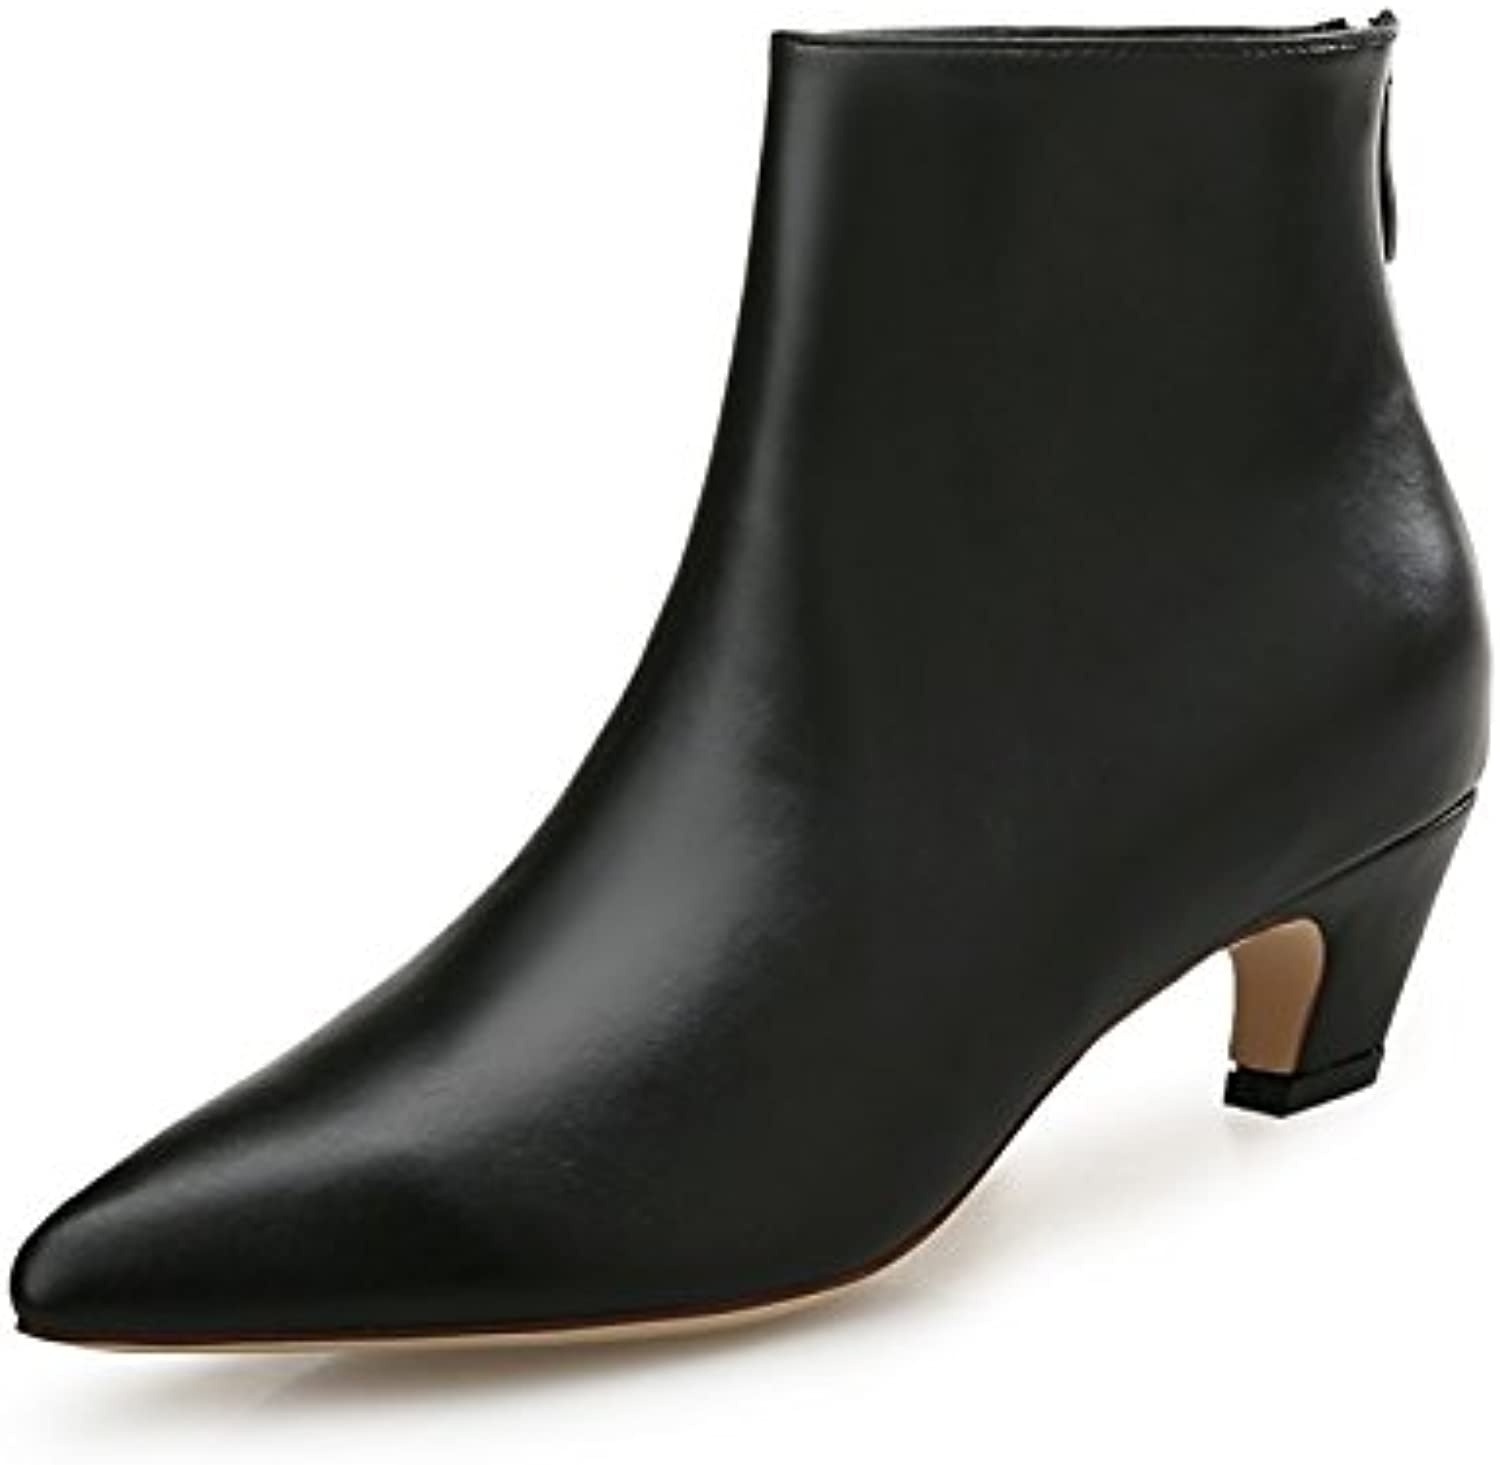 HSXZ Women's shoes Synthetic Microfiber PU Winter Fall Fashion Boots Boots Low Heel Pointed Toe for Dress Black